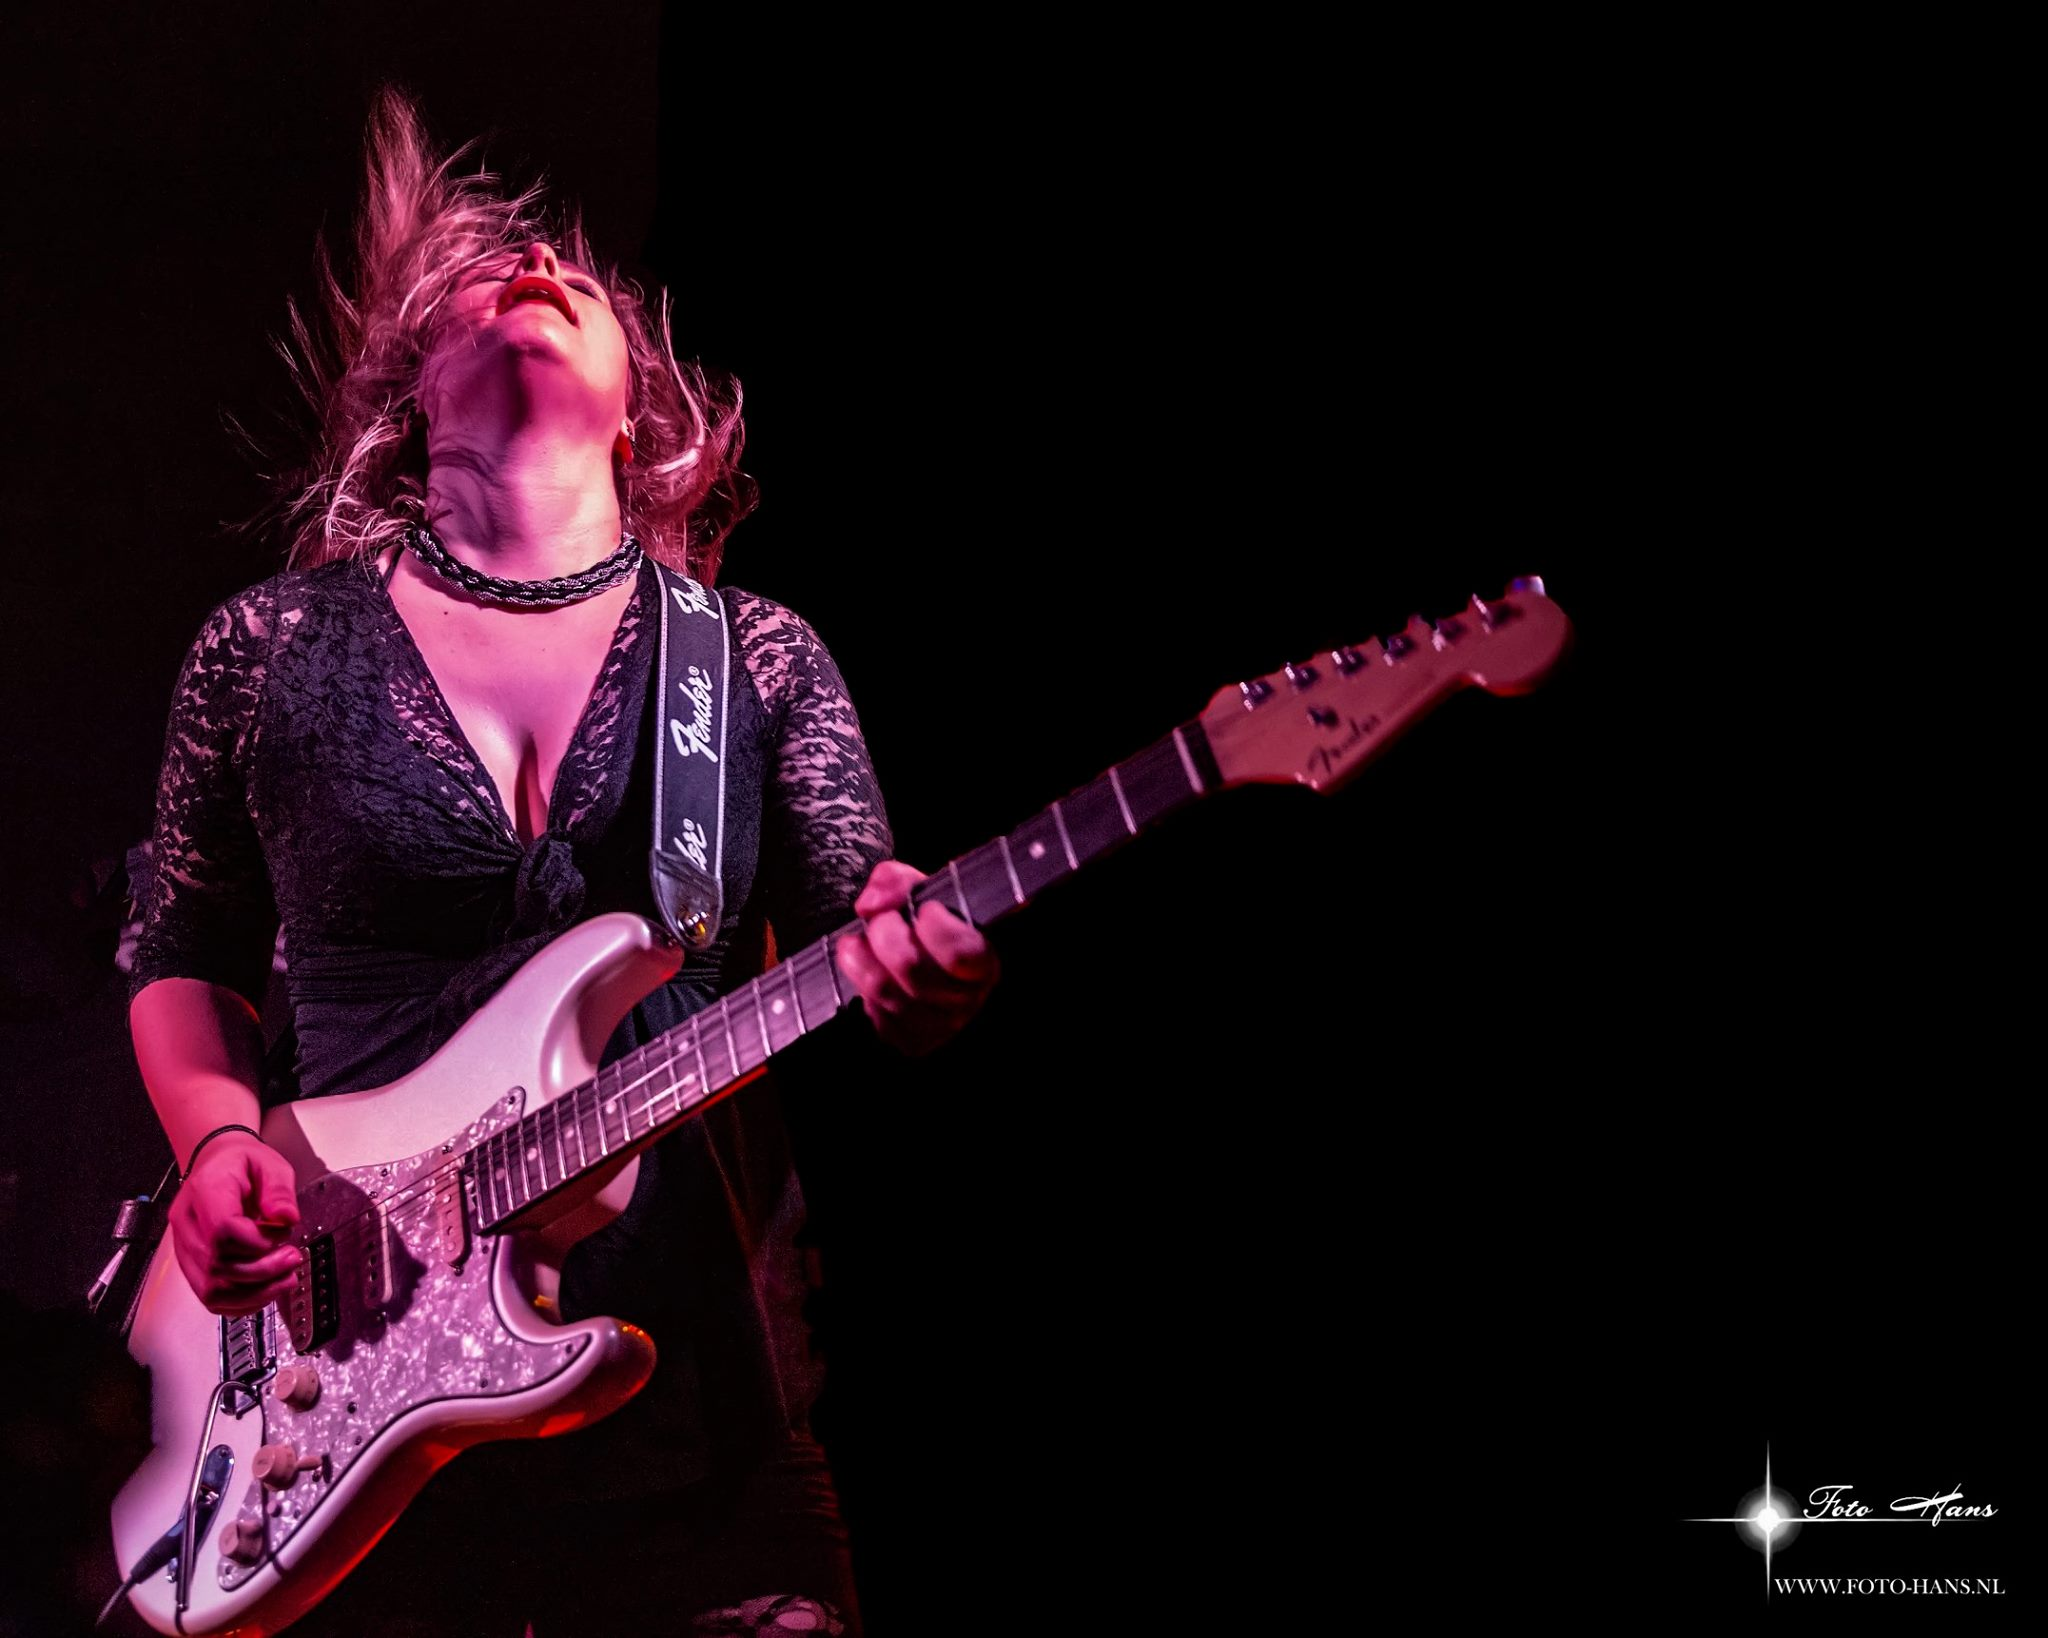 Eliana Cargnelutti - Blues Rocker from North Italy plays in West Midlands